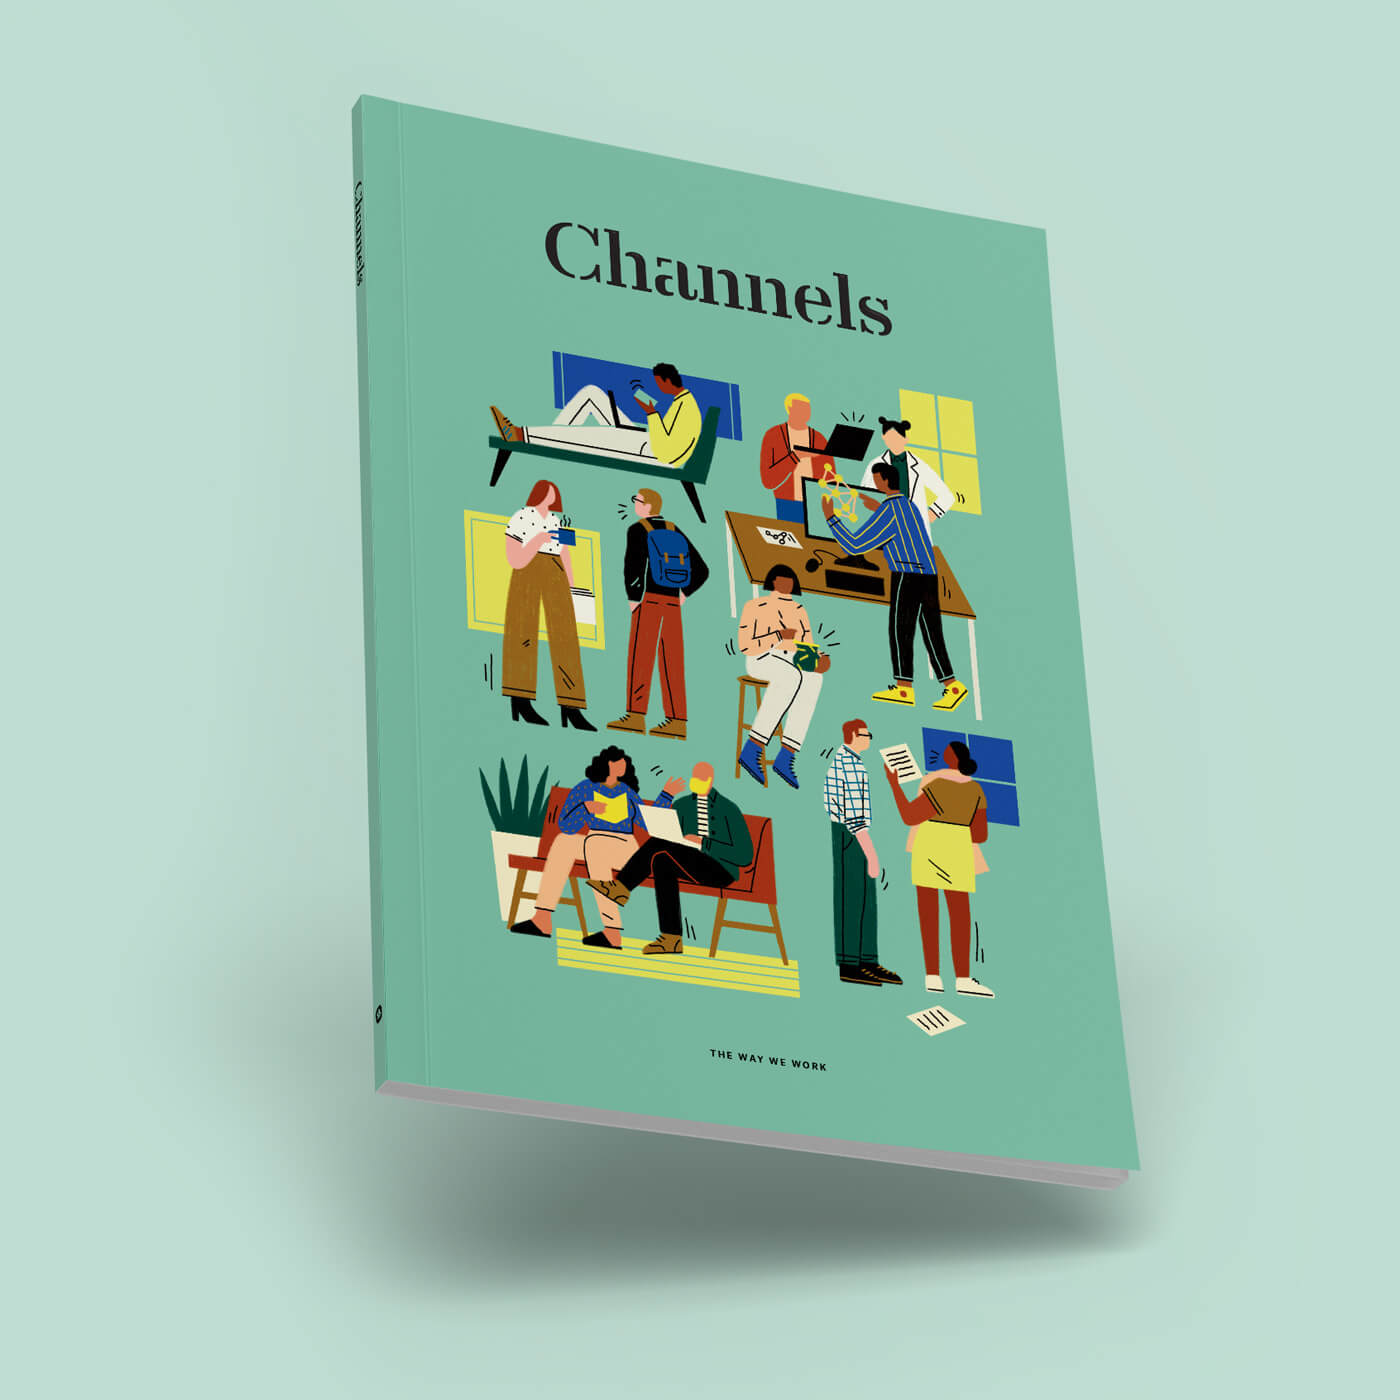 Channels - A magazine from Slack that explores how the modern workplace is evolving.Art Direction, Design